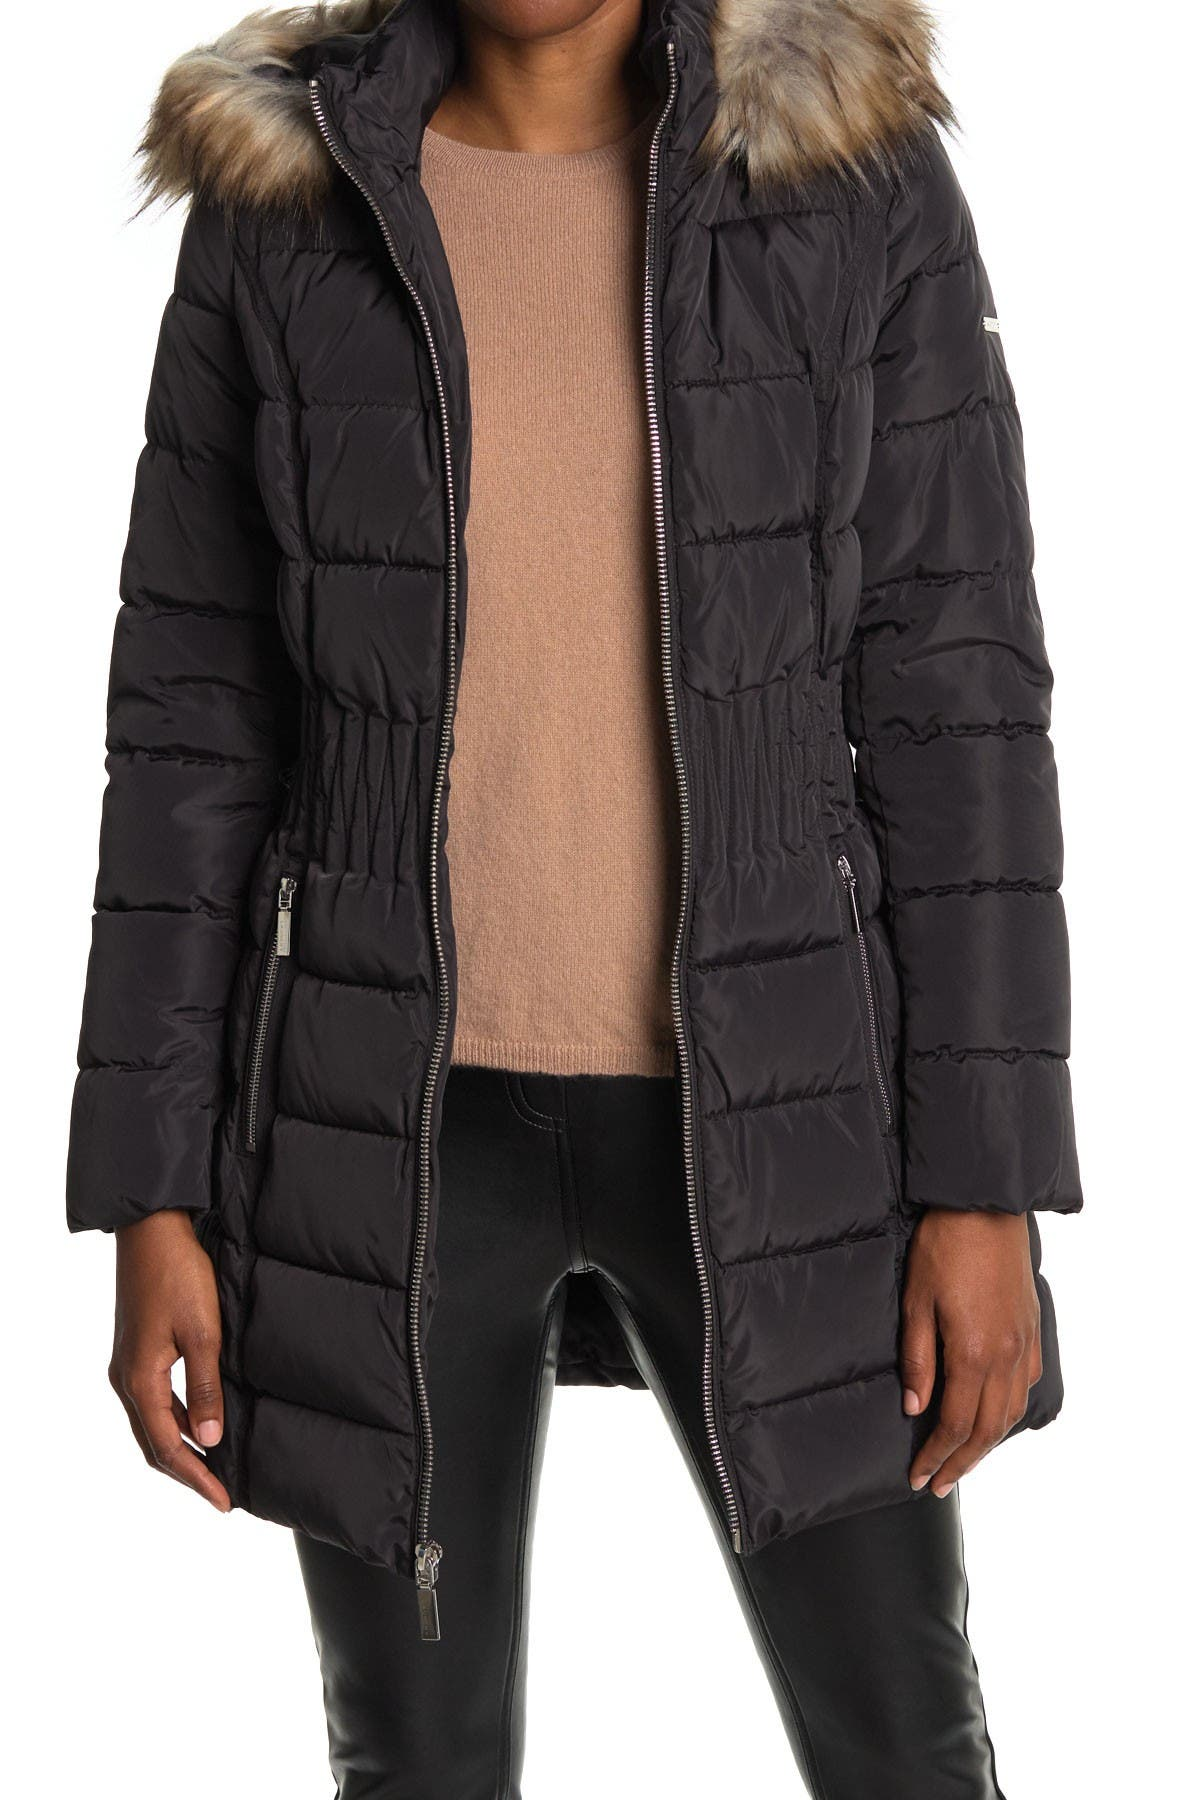 Image of Laundry By Shelli Segal Faux Fur Hood Quilted Puffer Jacket